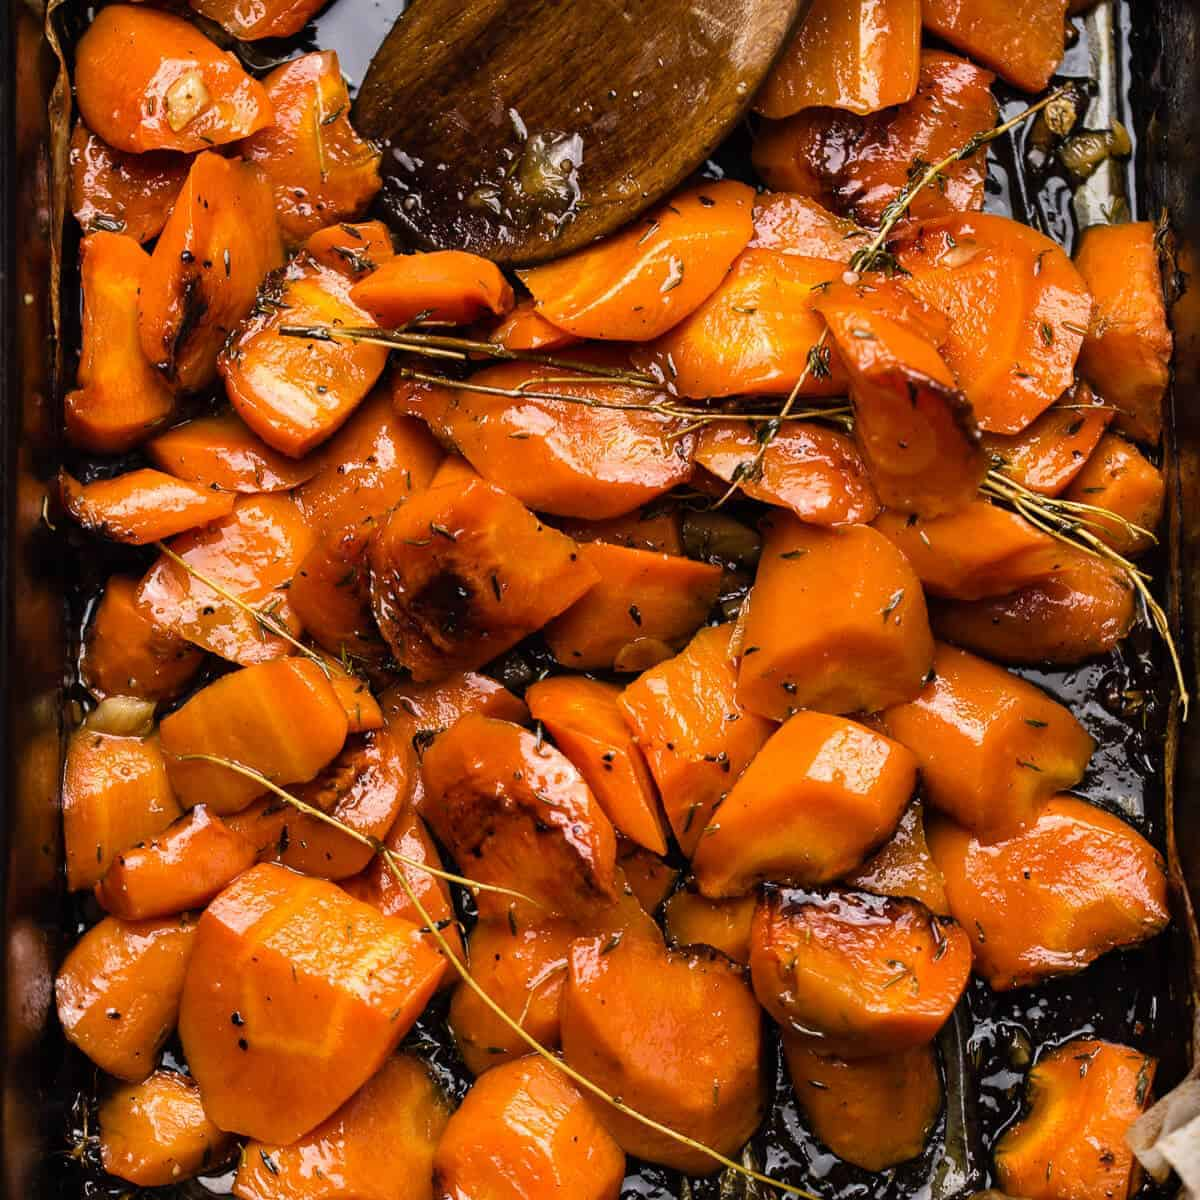 honey roasted orange carrots with thyme leaves in black oven tray